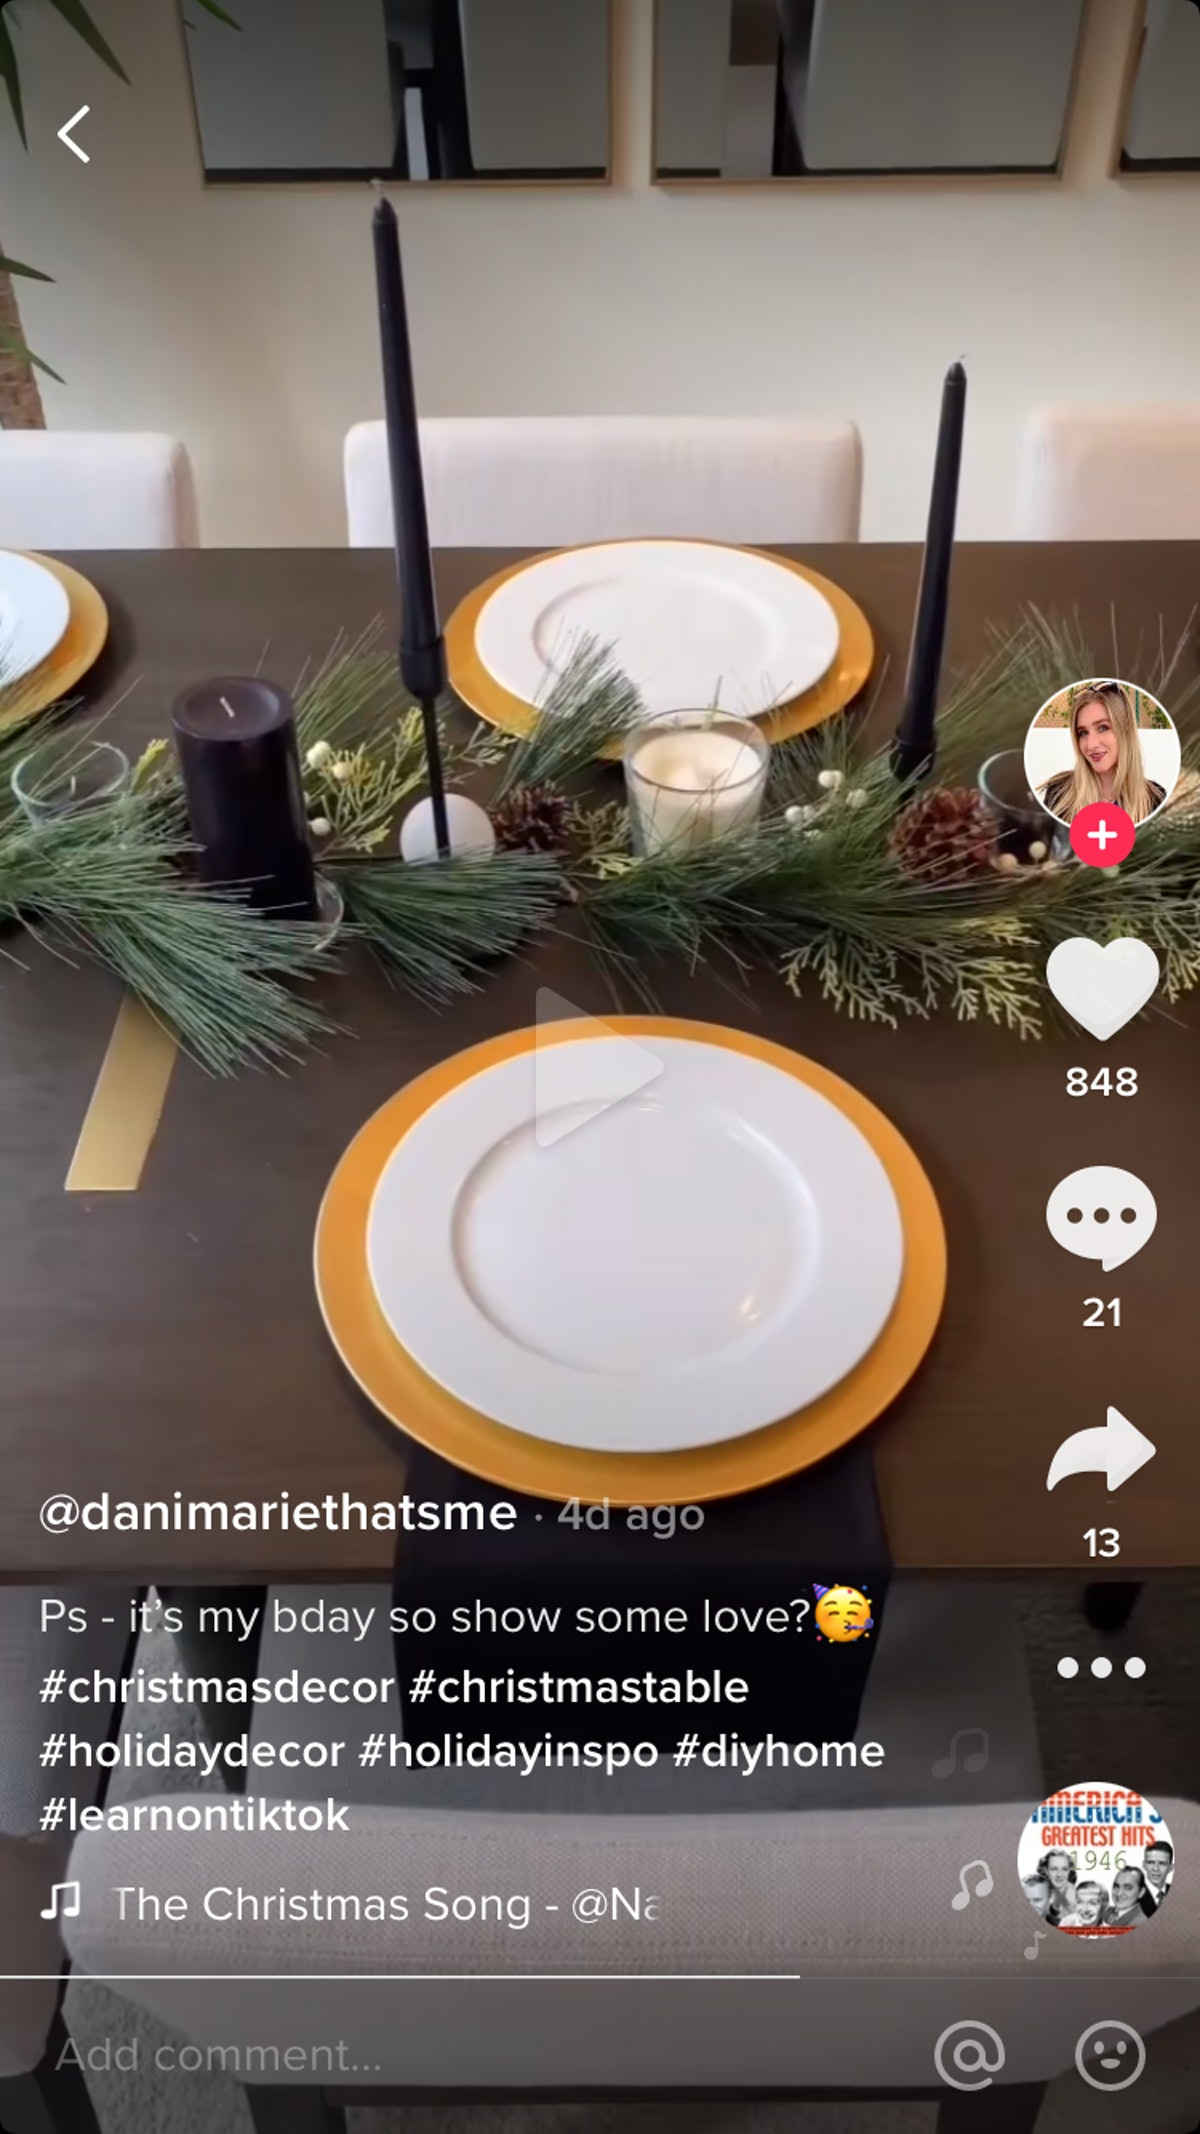 A woman shows how she decorates a modern Christmas table on TikTok, by adding black and white candles next to golden charger plates for an elegant design.